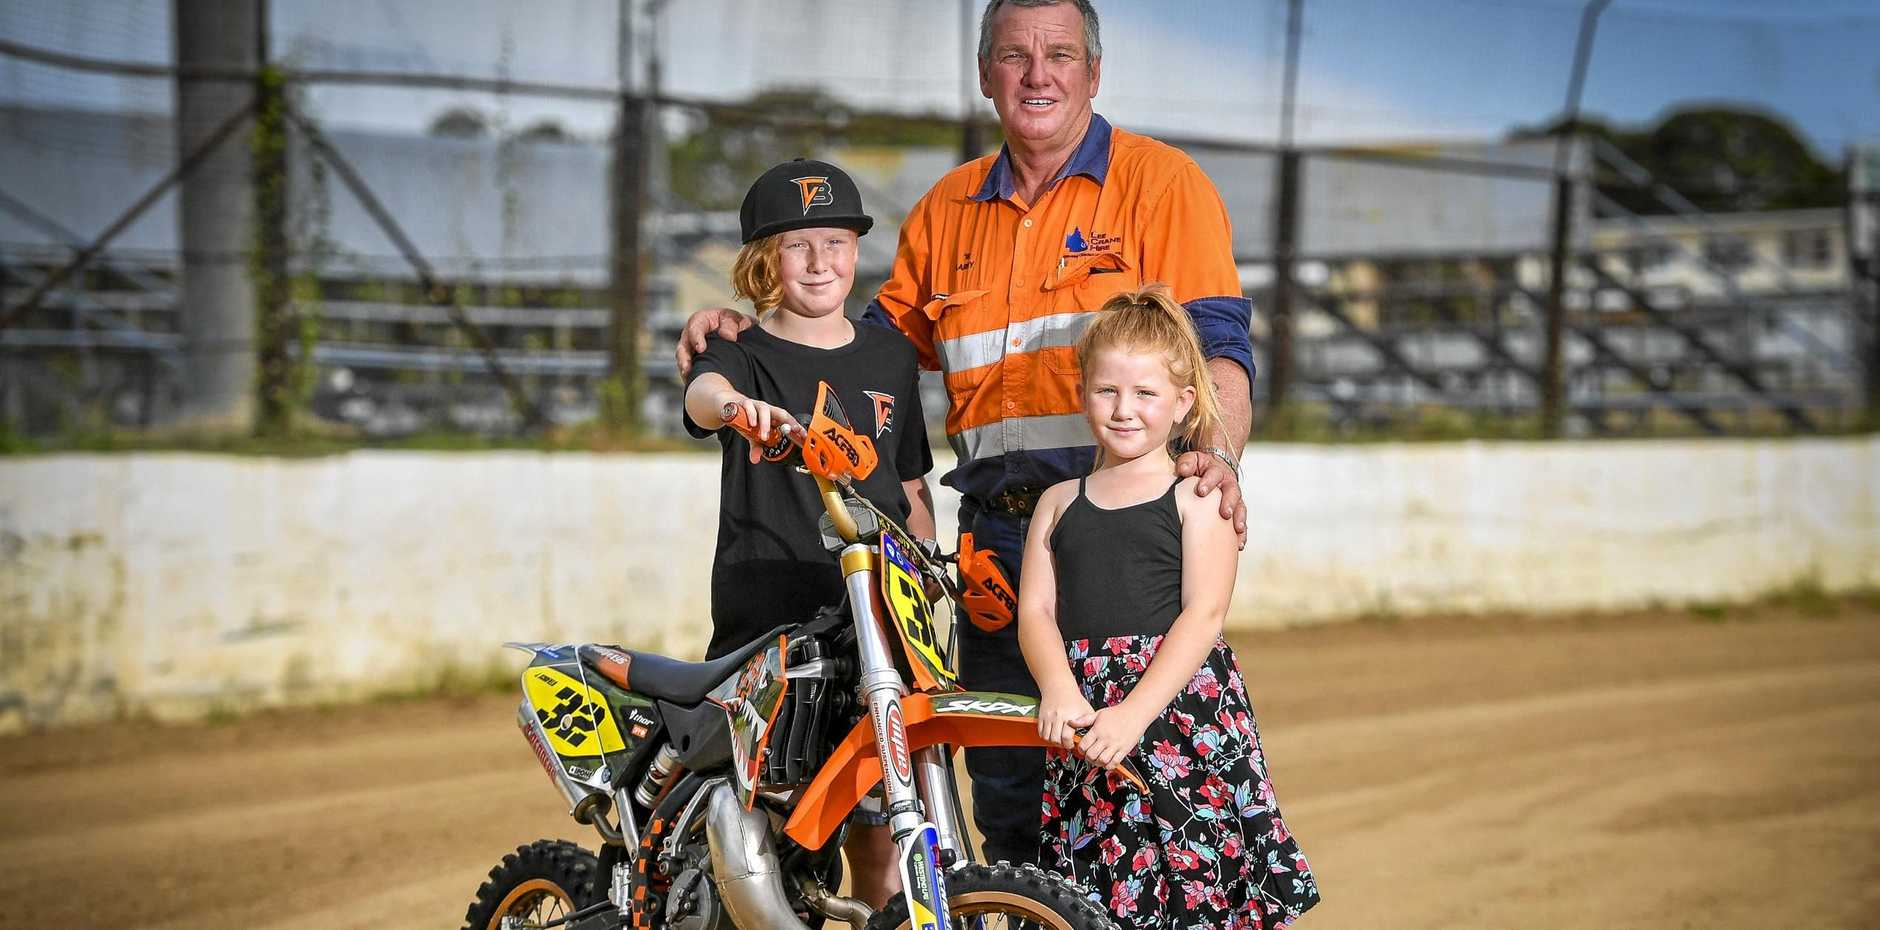 ON TRACK: Garry Schofield with his grandchildren and fellow riders Jaidyn, 11, and Maddison, 7. He said it's all positive for the fledgling club.